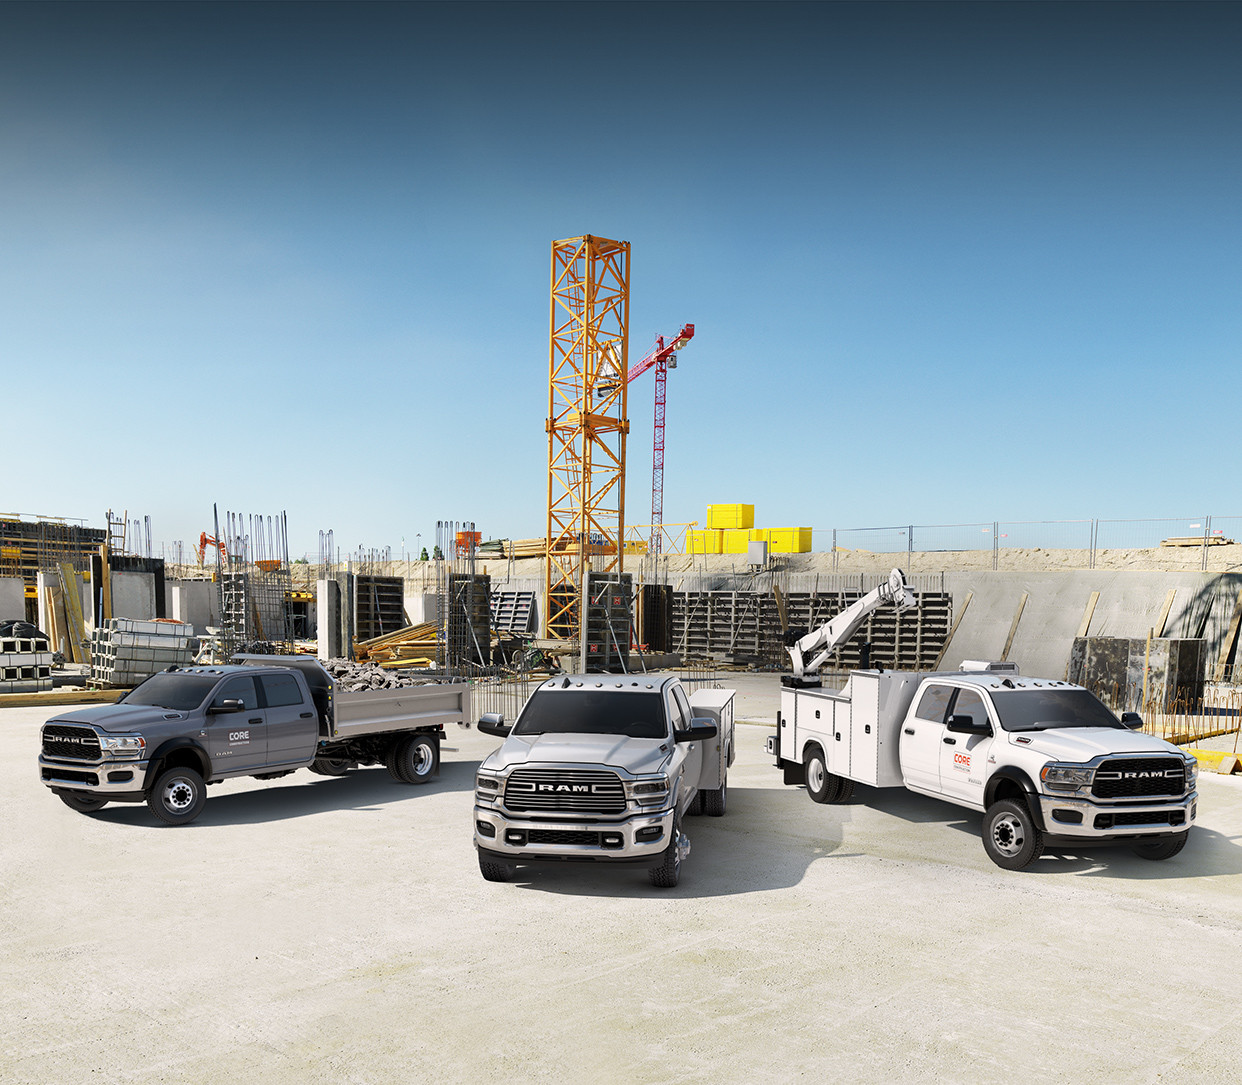 2019 Ram Chassis Cab showing the 3500, 4500, and 5500.